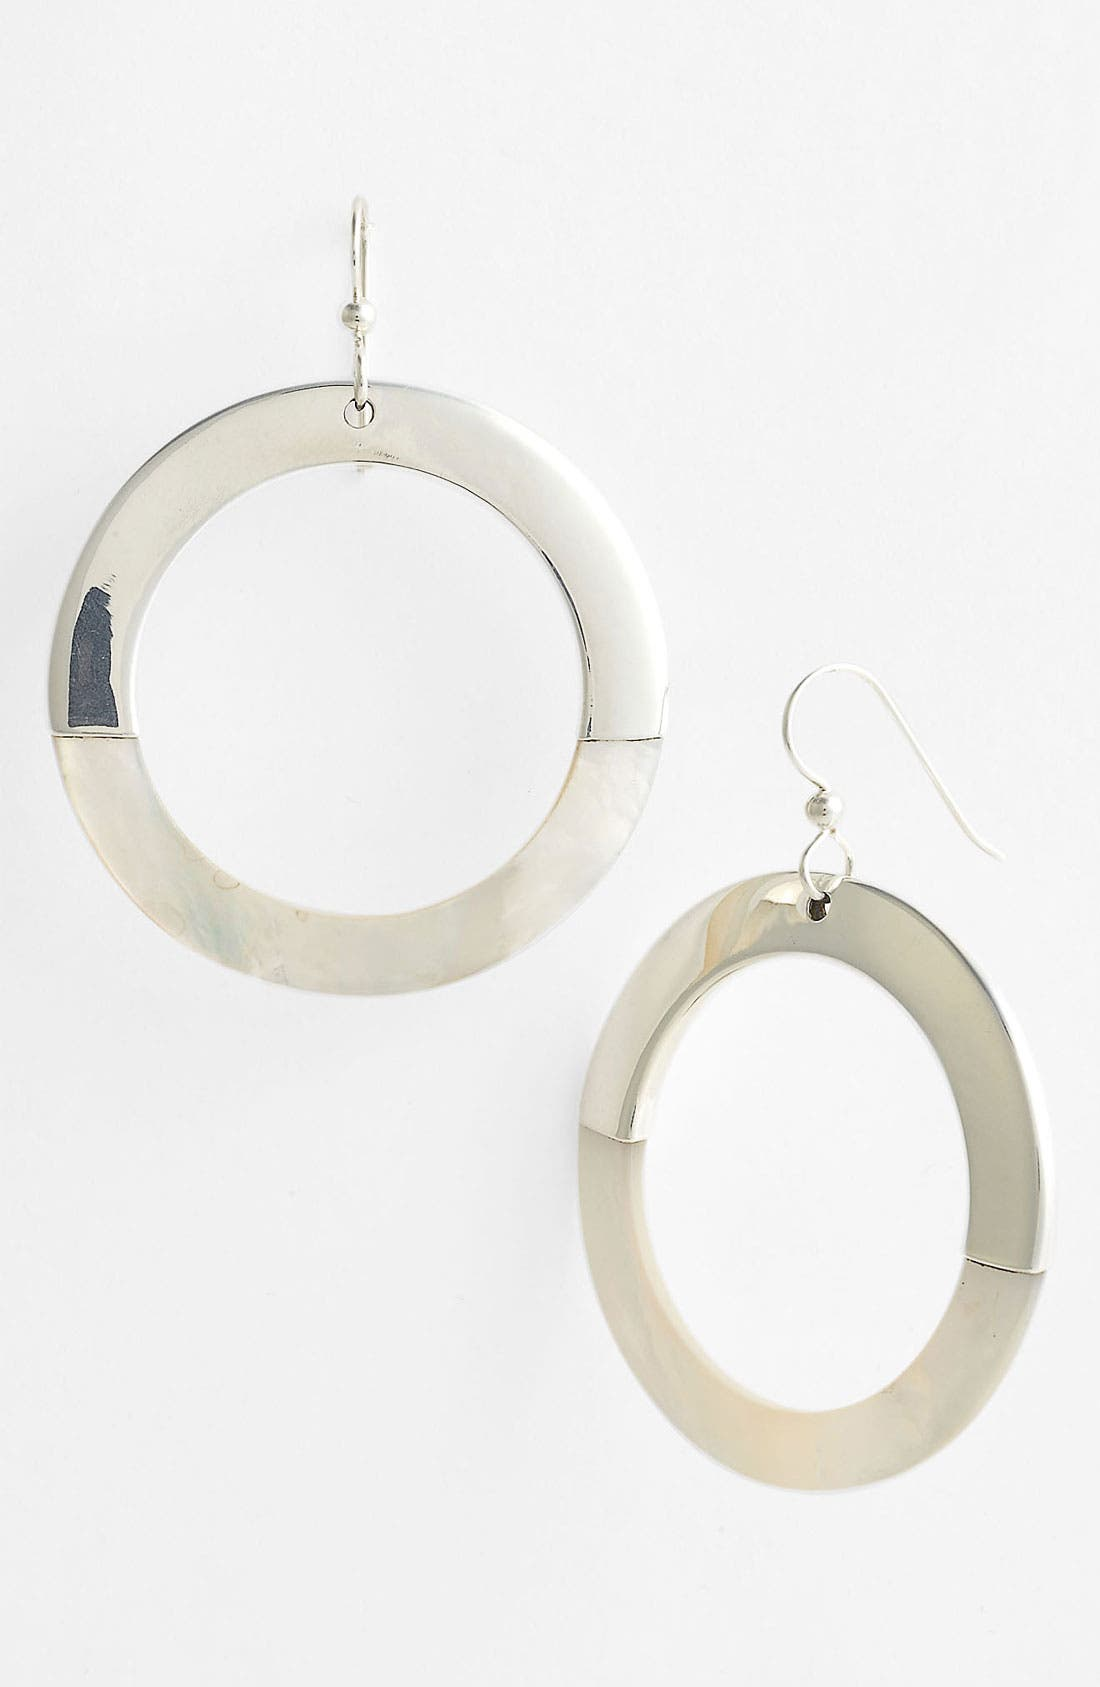 Main Image - Simon Sebbag 'Bora Bora' Open Circle Shell Earrings